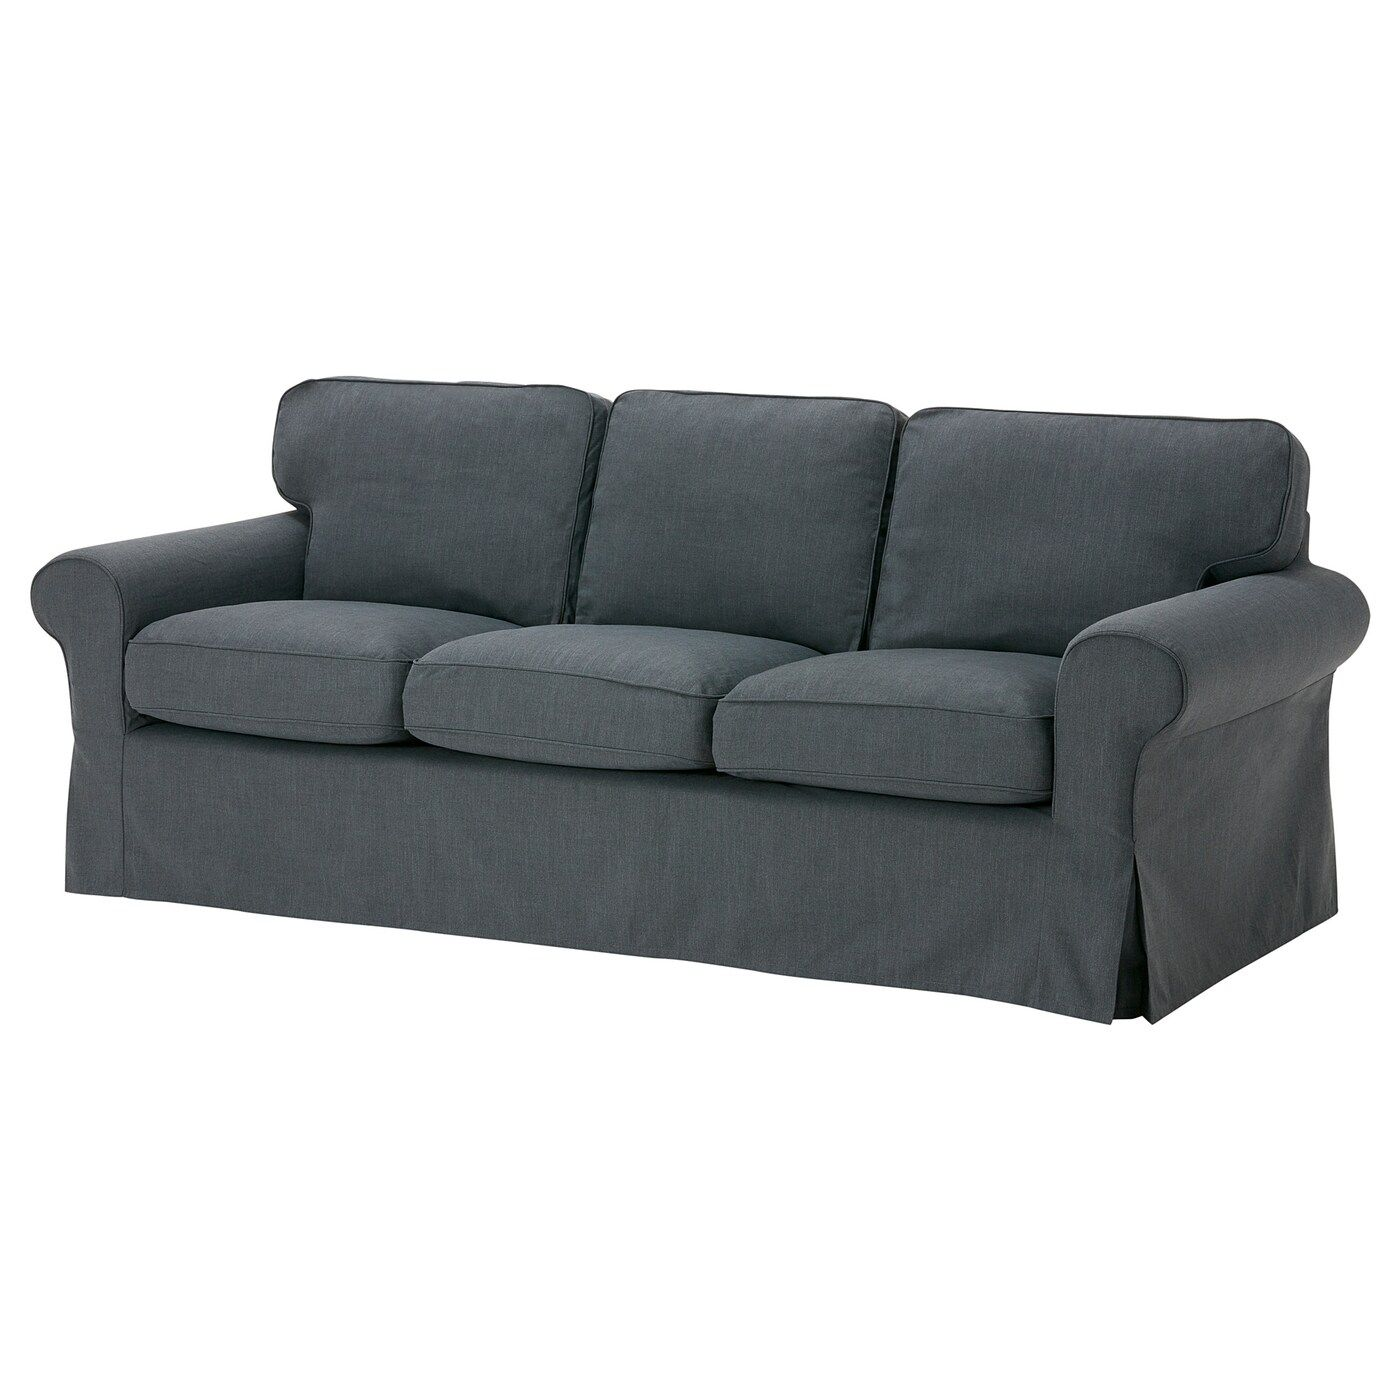 10 best sofa covers in 2021 top rated